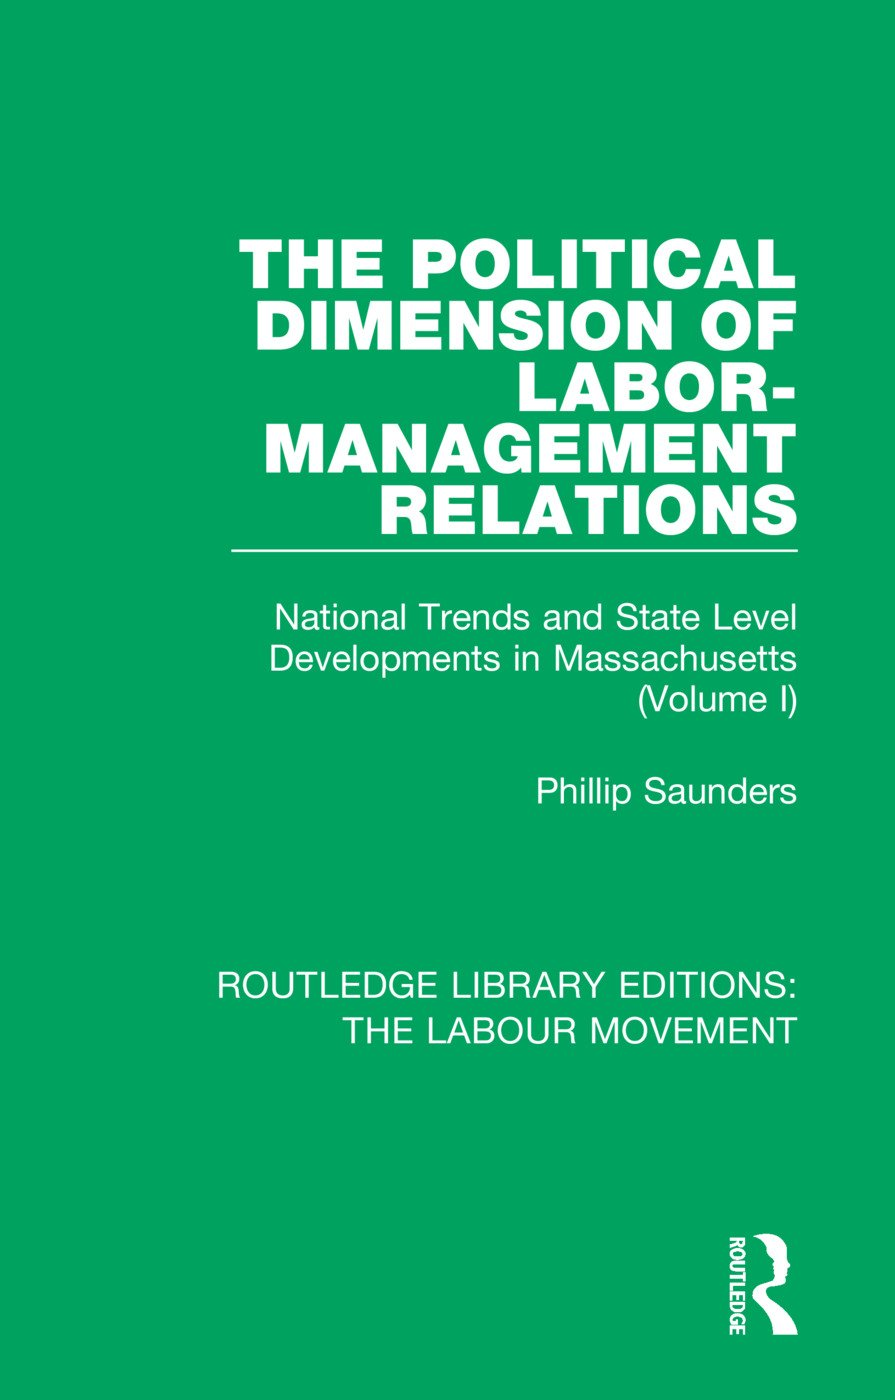 The Political Dimension of Labor-Management Relations: National Trends and State Level Developments in Massachusetts (Volume 1) book cover